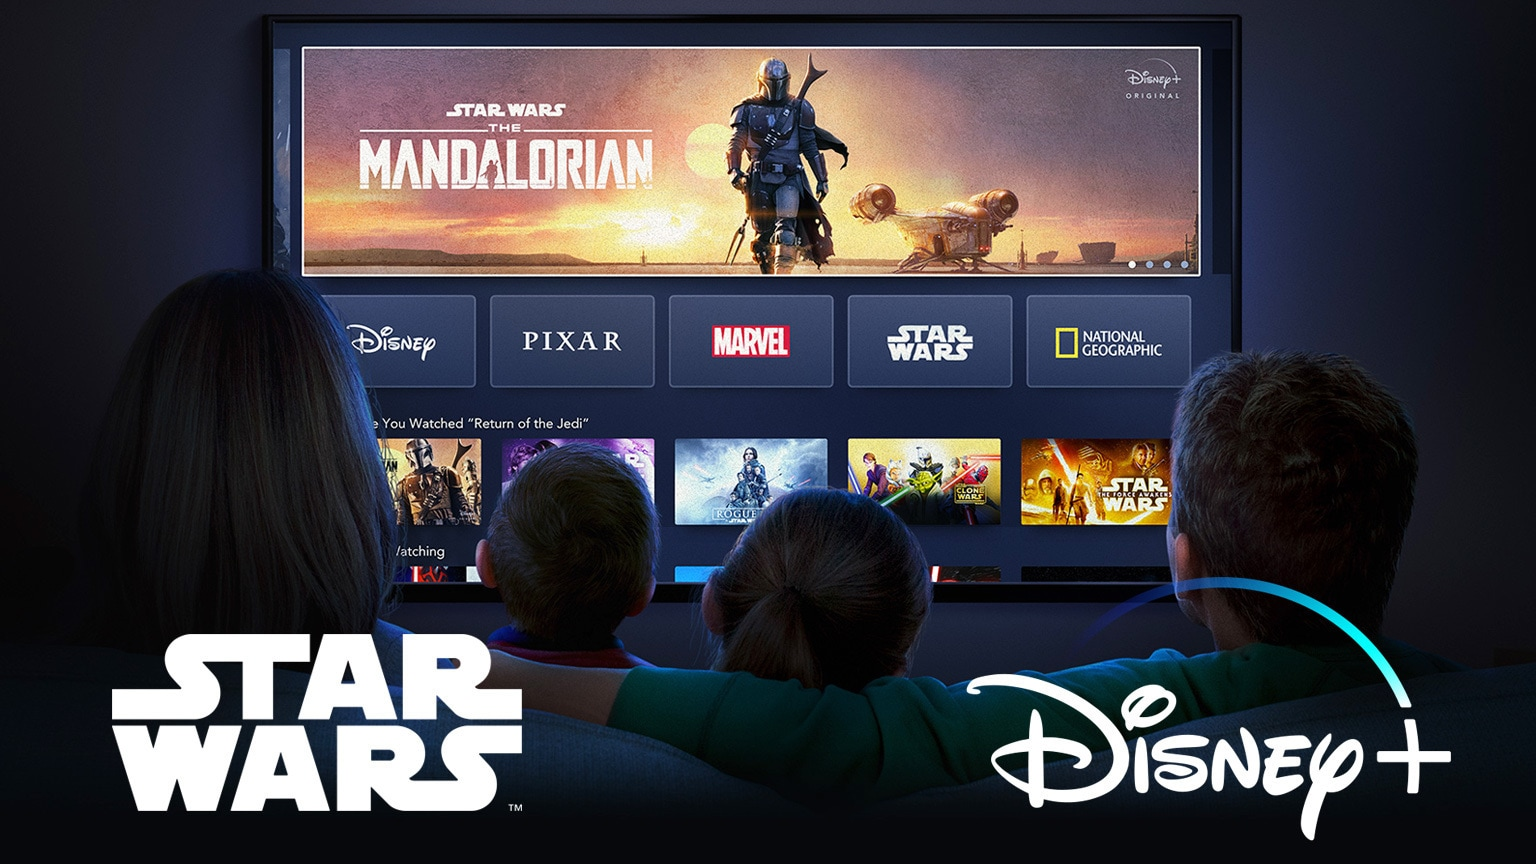 Star Wars on Disney+